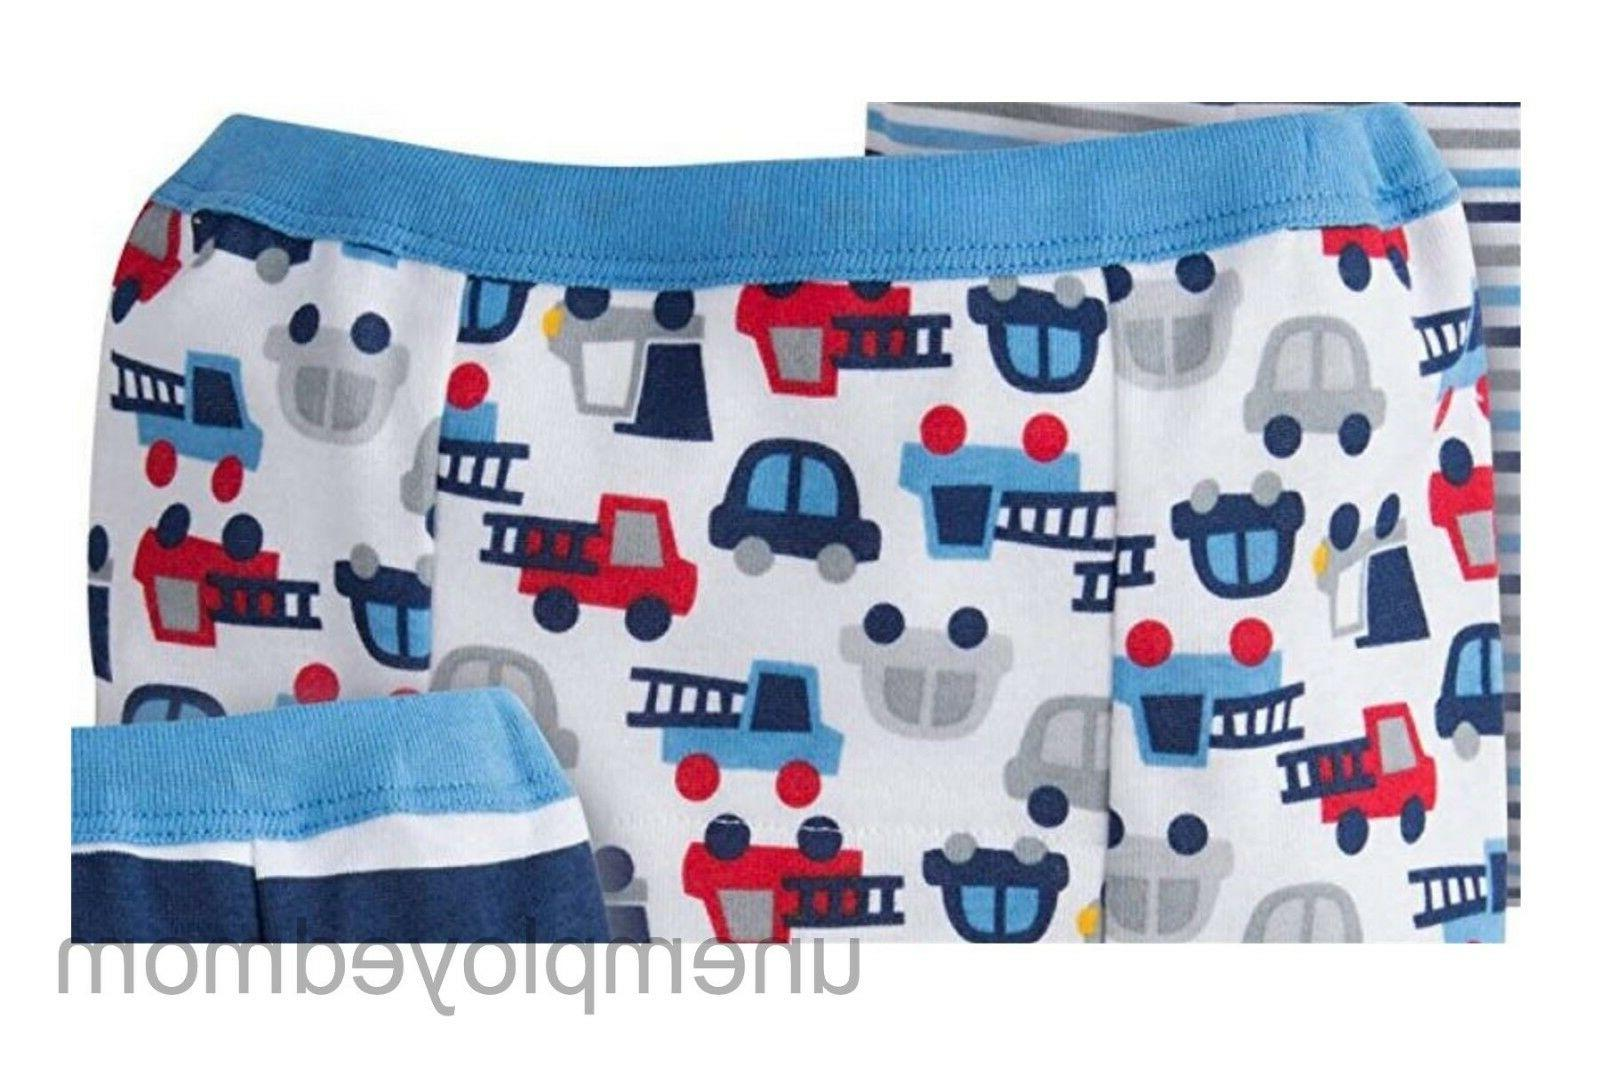 Toddlers of Cotton Briefs 2T 3T